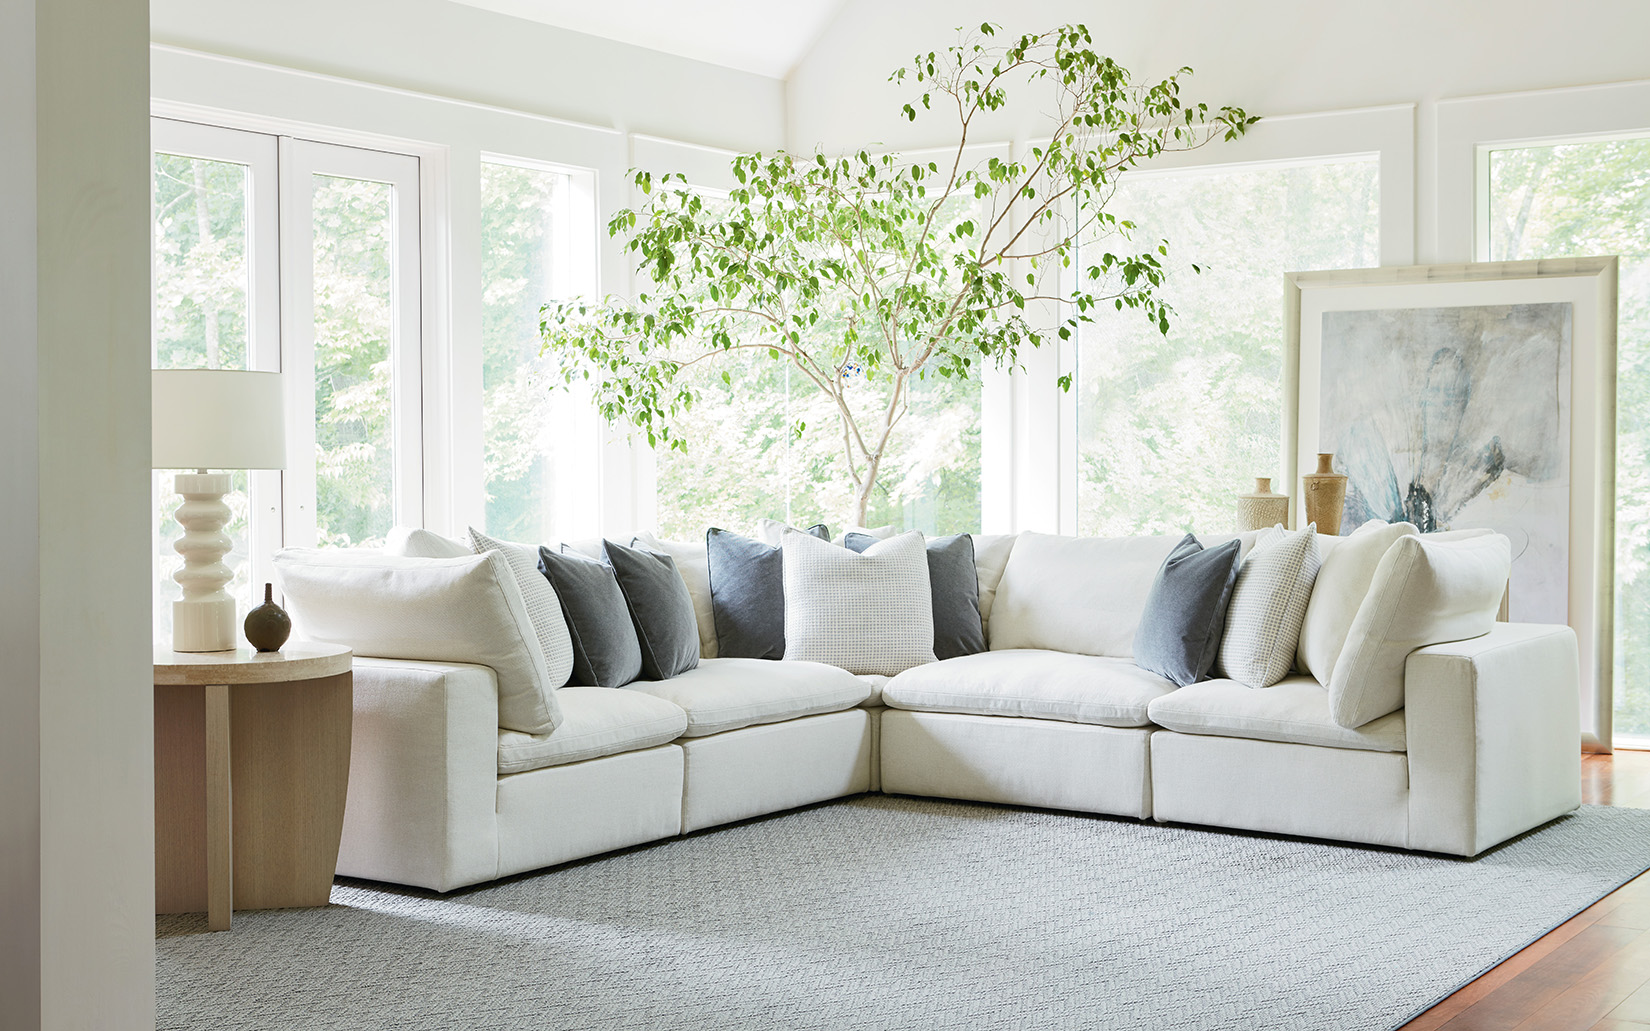 Seven Benefits of a Modular Sectional Sofa